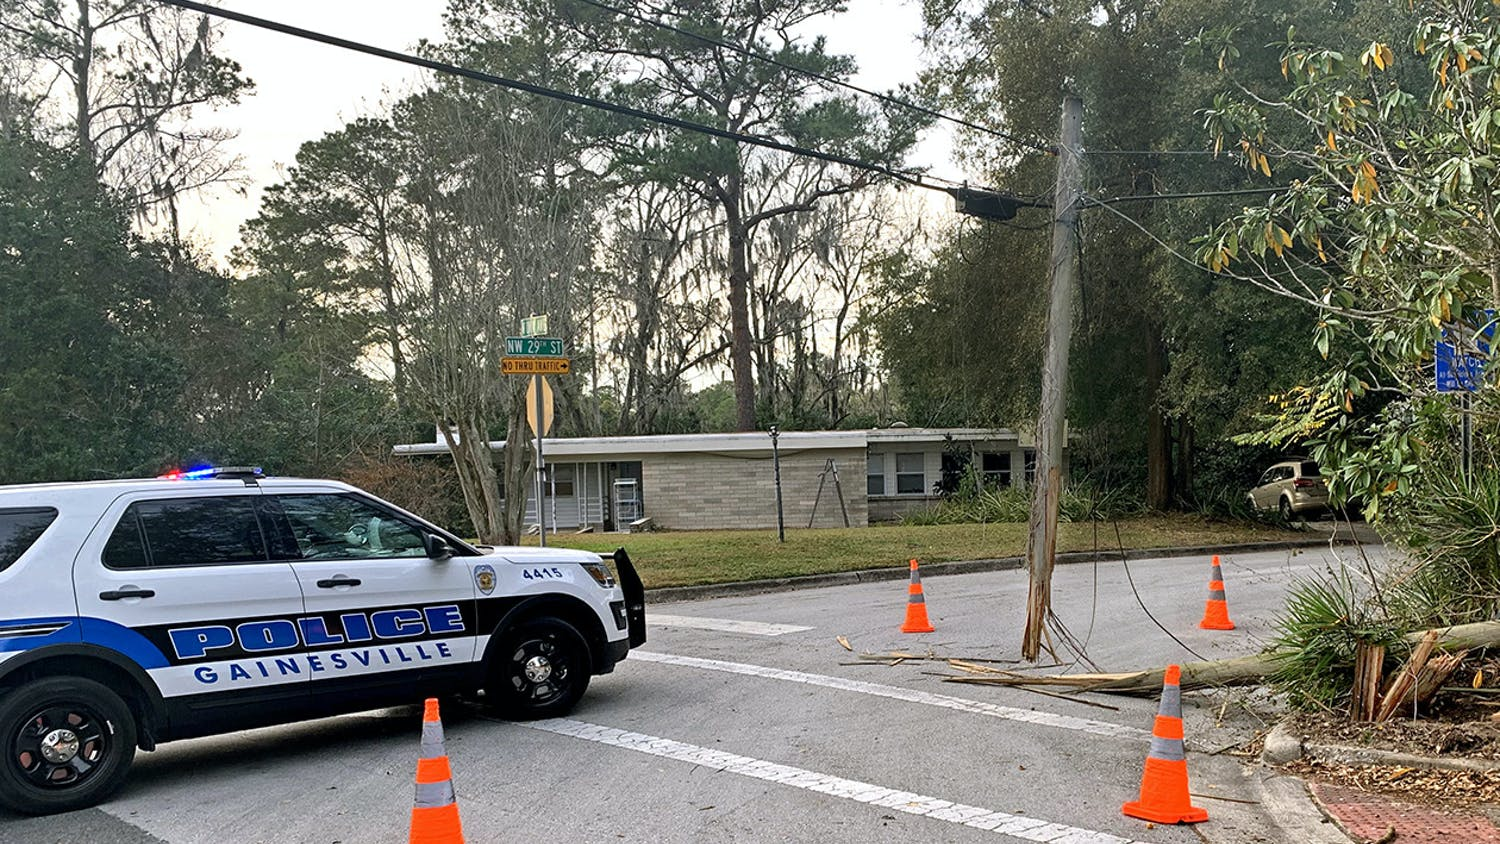 An electrical pole was damaged after a car crash on the corner ofNorthwest 29th Streetand University Avenue onMonday, Jan. 25, 2021. This crash occurred nine days after the car crash on West University Avenue that killed UF student Sophia Lambert and left five others hospitalized.